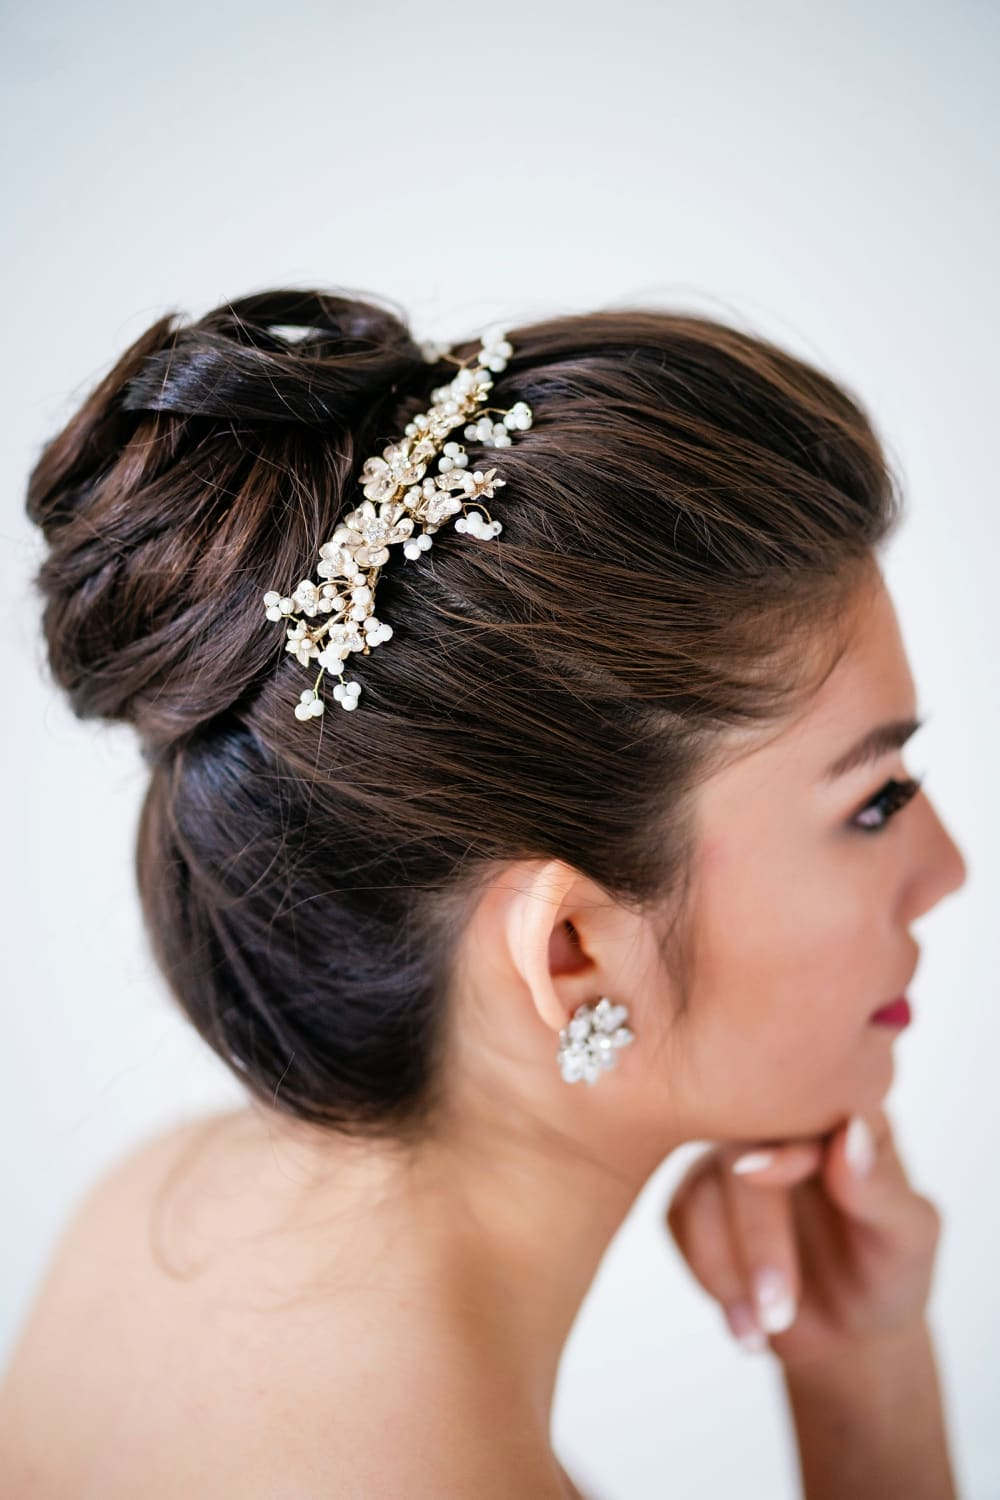 Little things borrowed - bridal accessories for rent - rent bridal headpieces, tiaras, jewelry and more